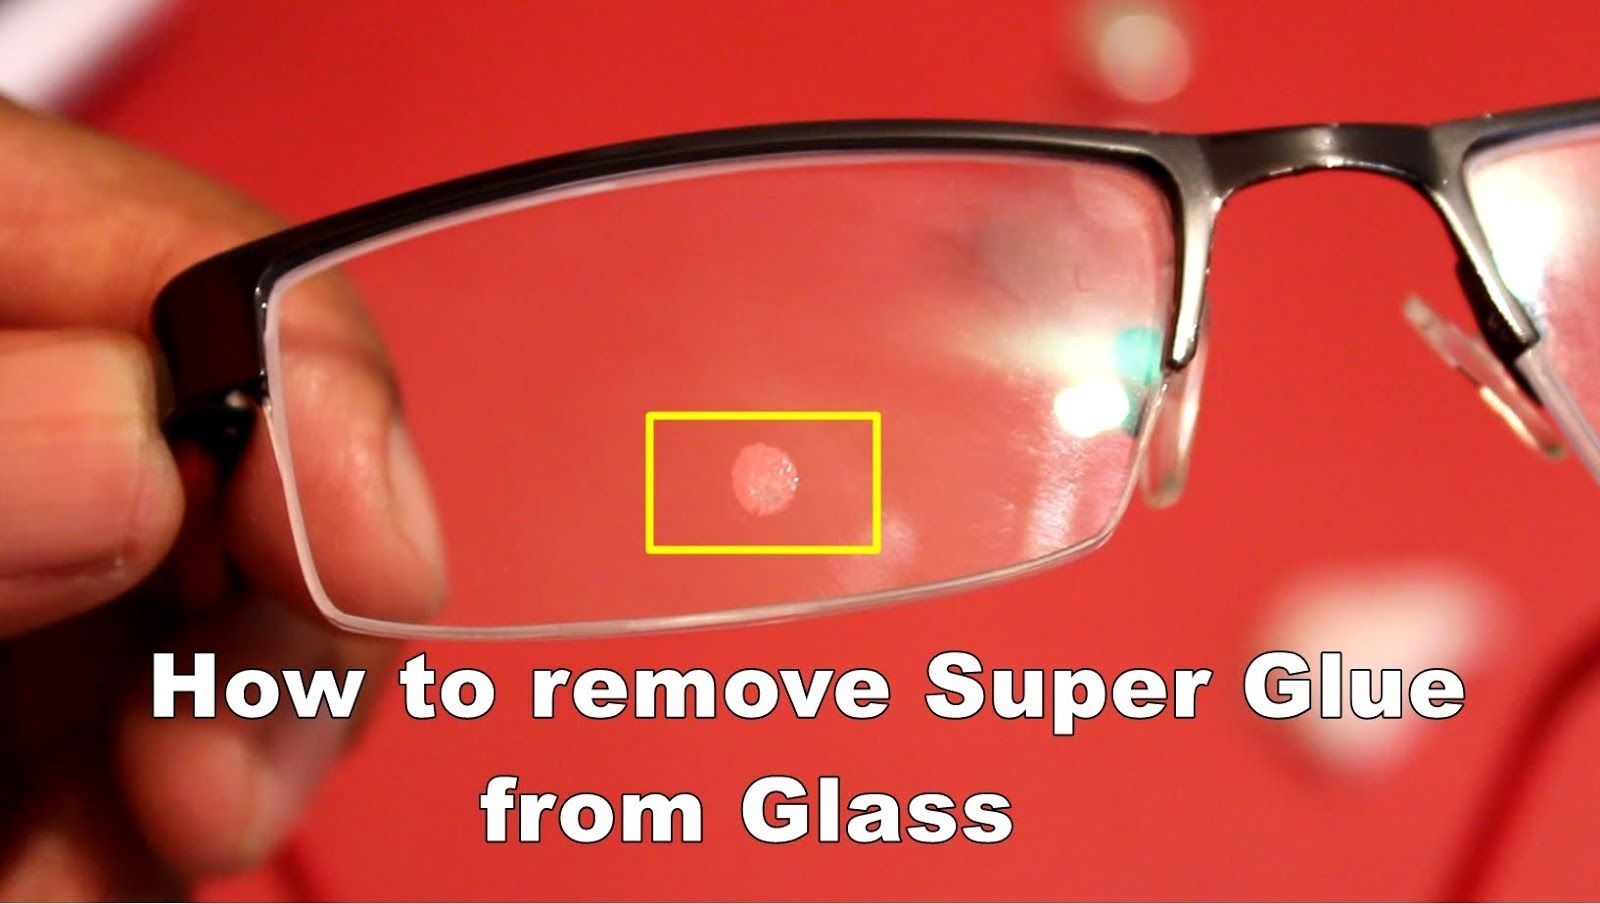 1cd3e0bda90446f4a1ee7377c449877c - How To Get Rid Of Super Glue From Glass